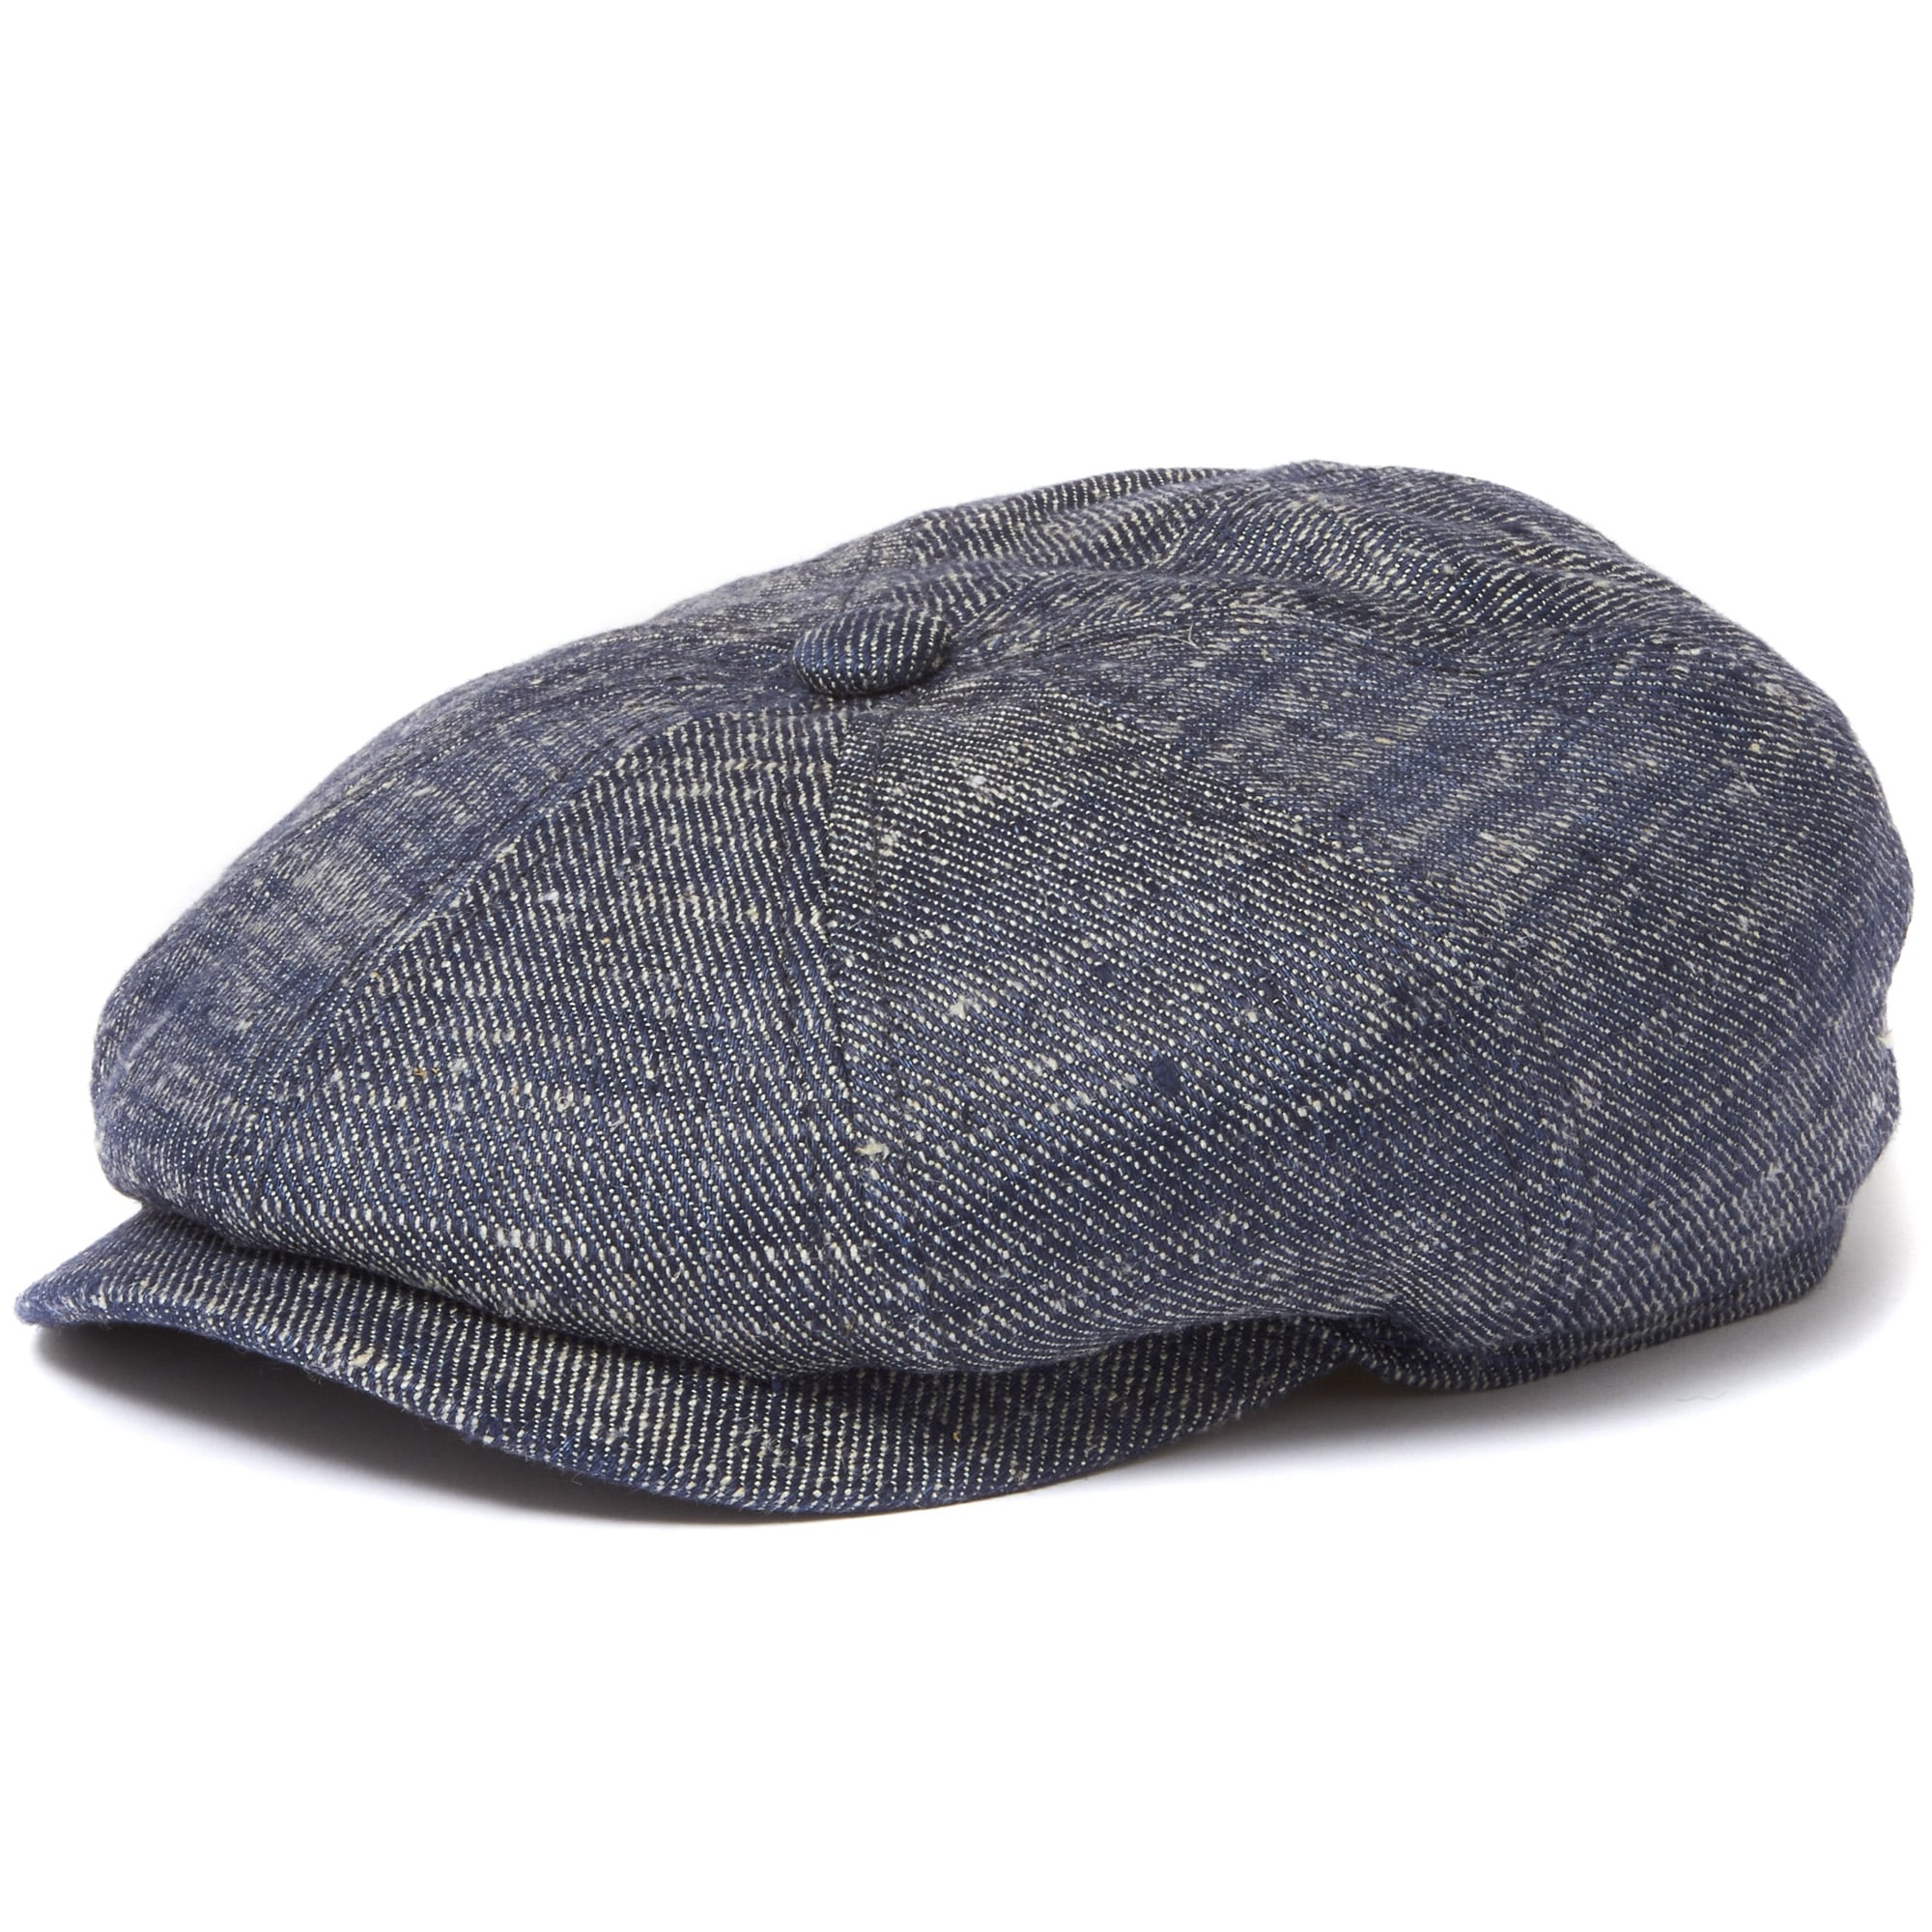 Stetson Navy Linen and Silk Denim Newsboy Cap  772588d00c07